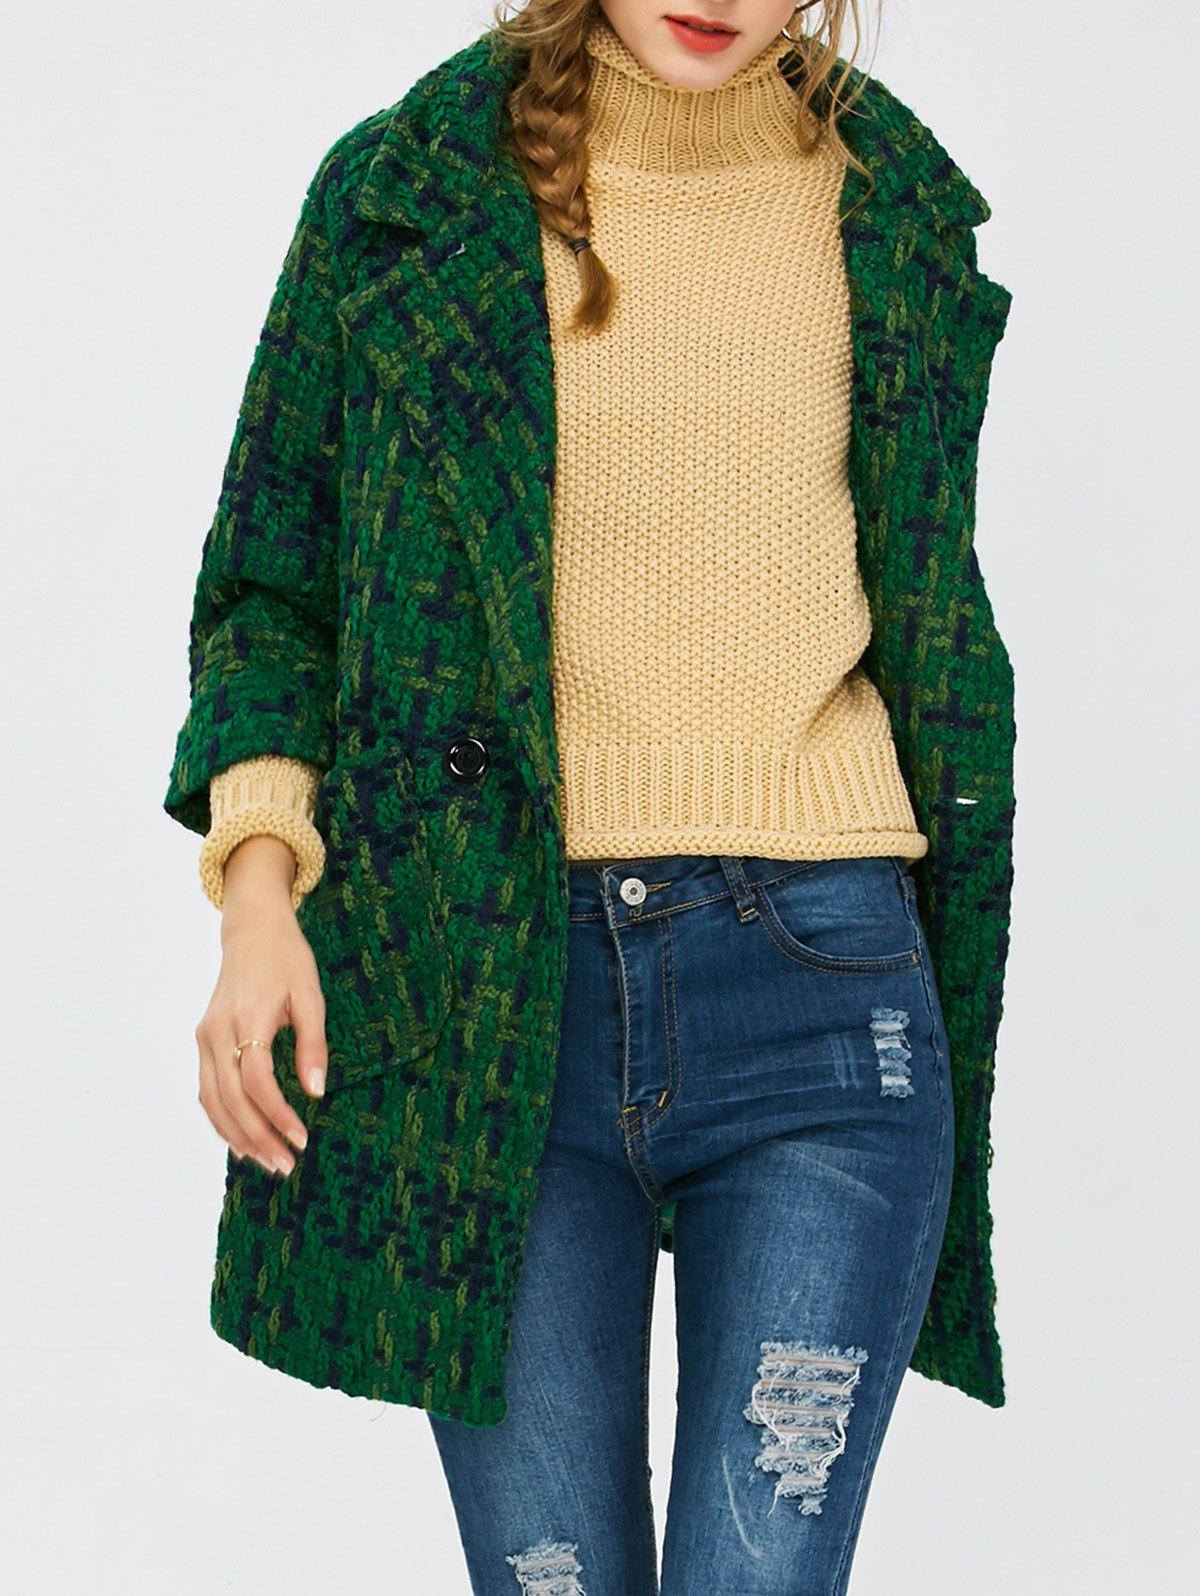 Chic Wool Blend Plaid Coat with Pockets